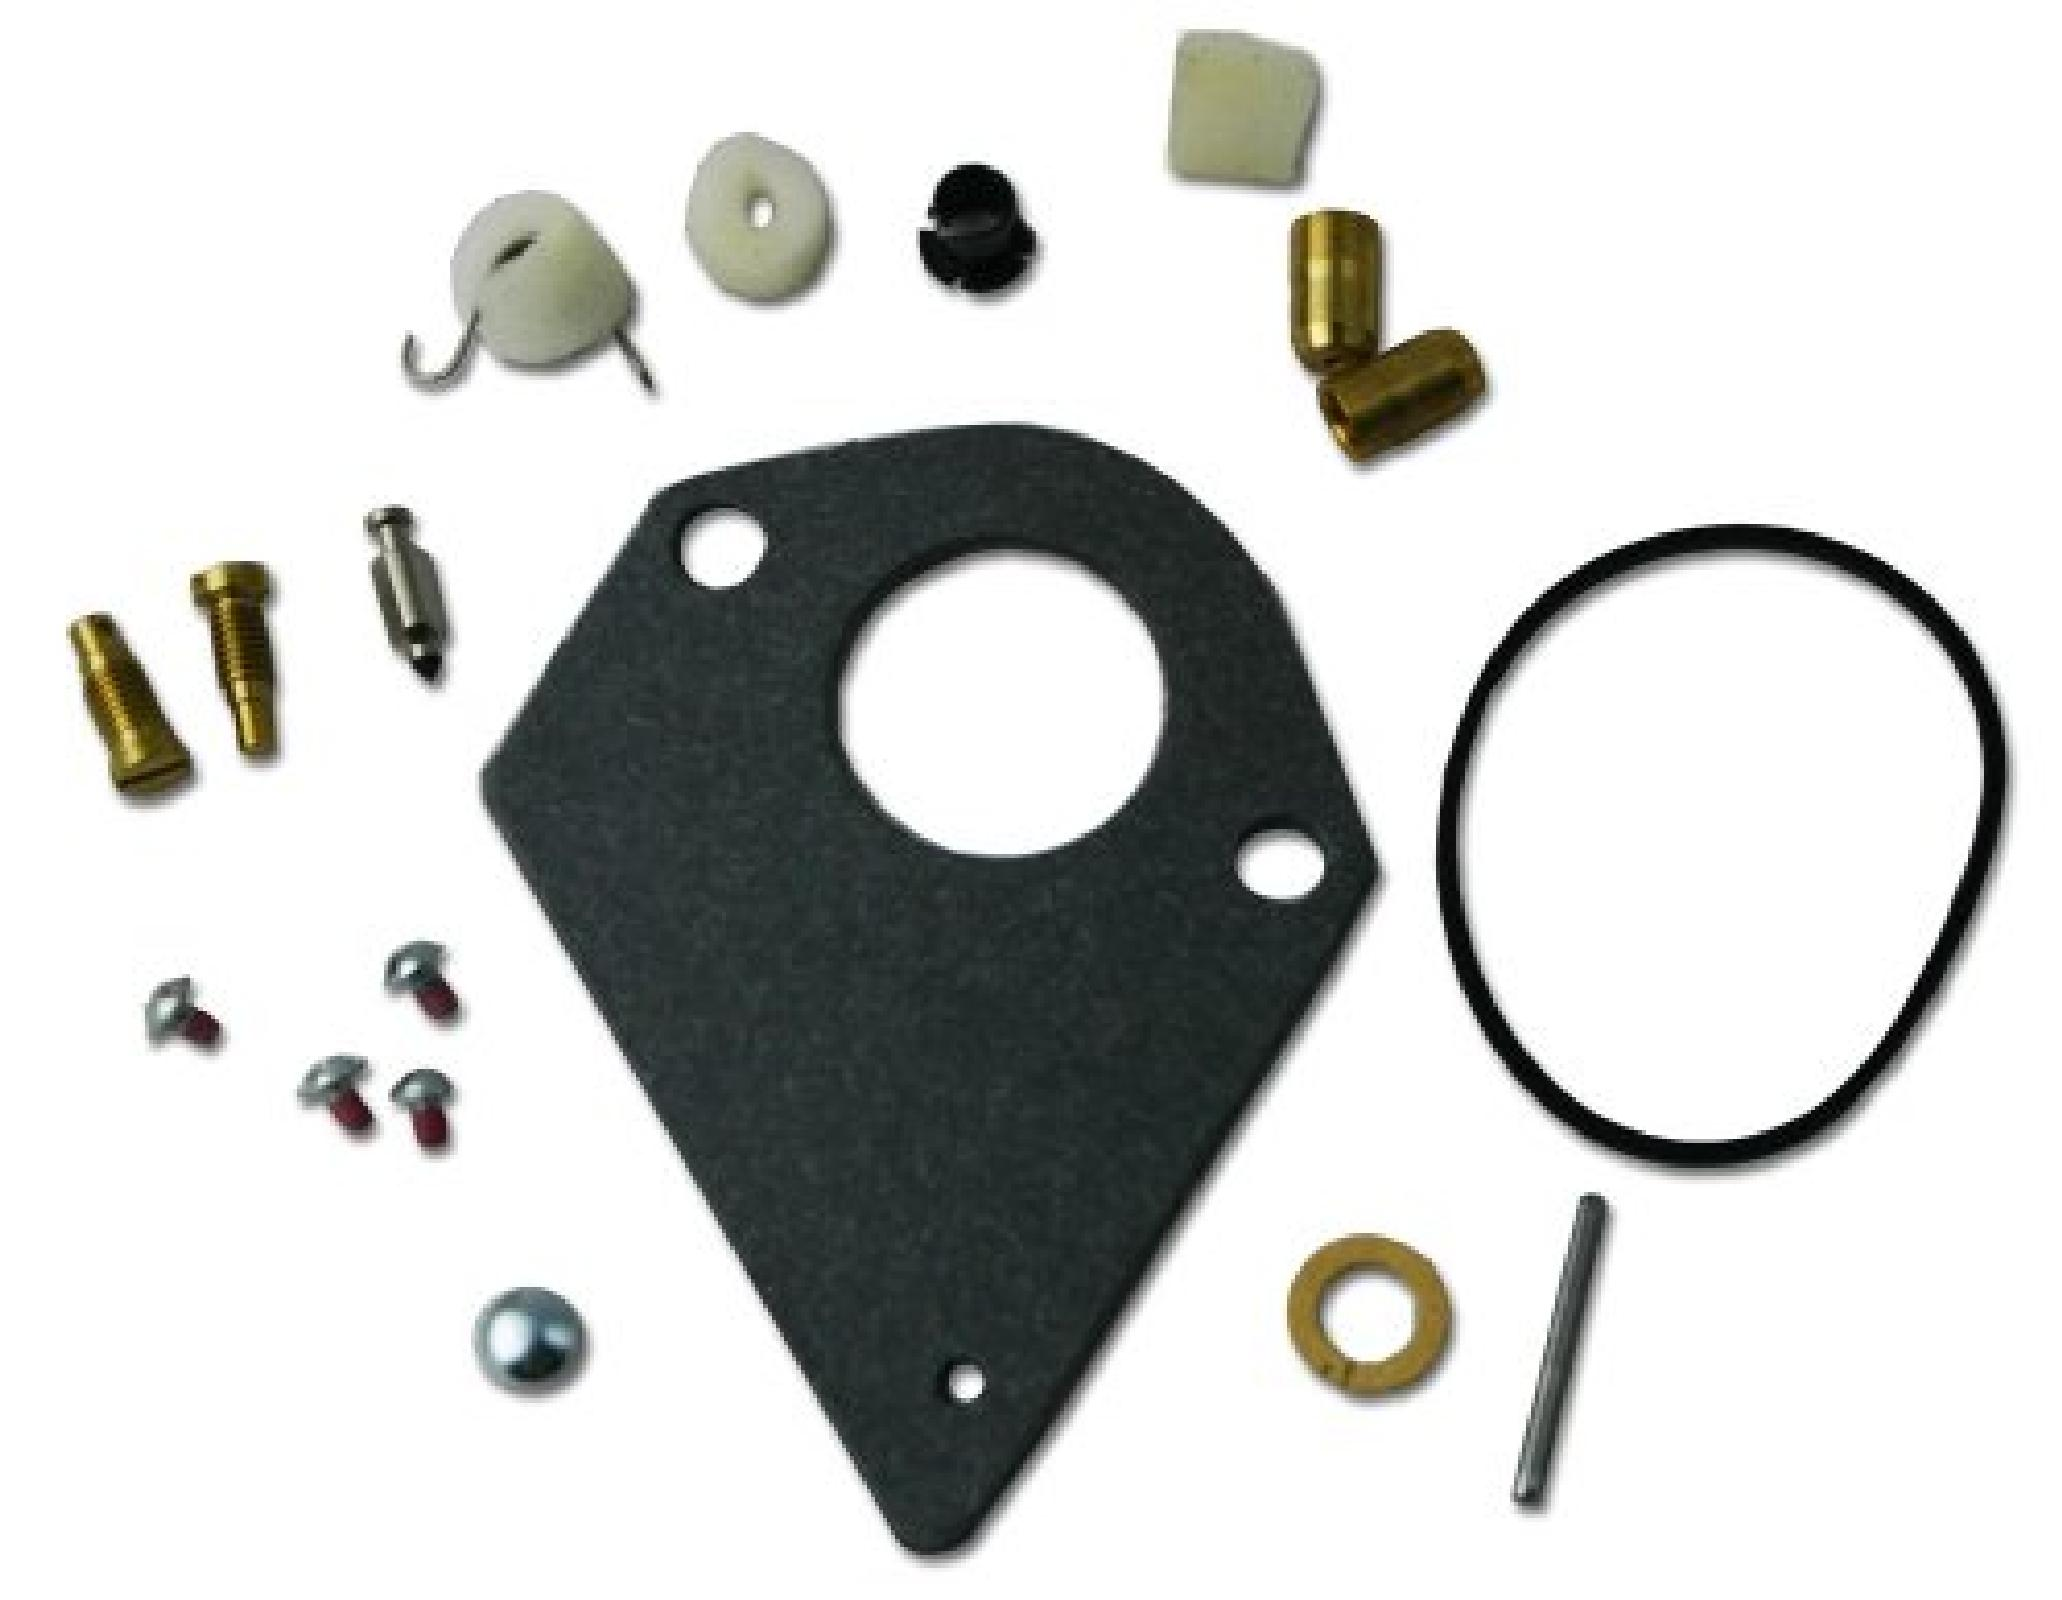 KIT CARB OVERHAUL part# 497481 by Briggs & Stratton